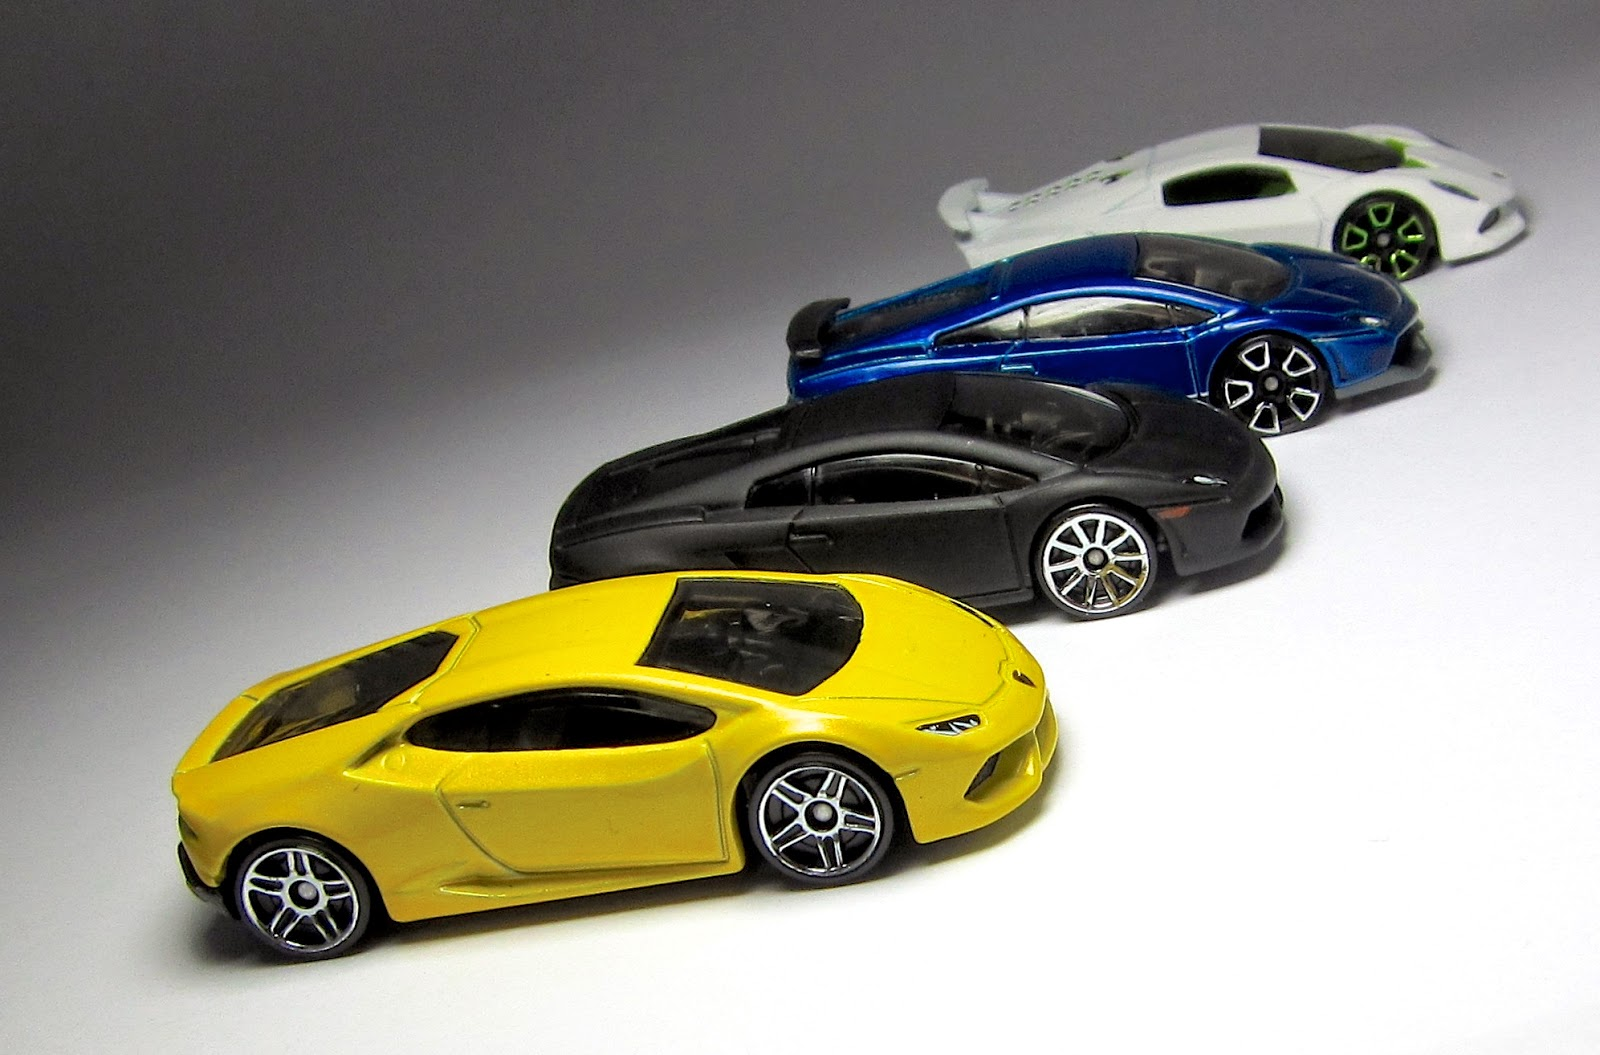 the hot wheels lamborghini huracán and other little hot wheels